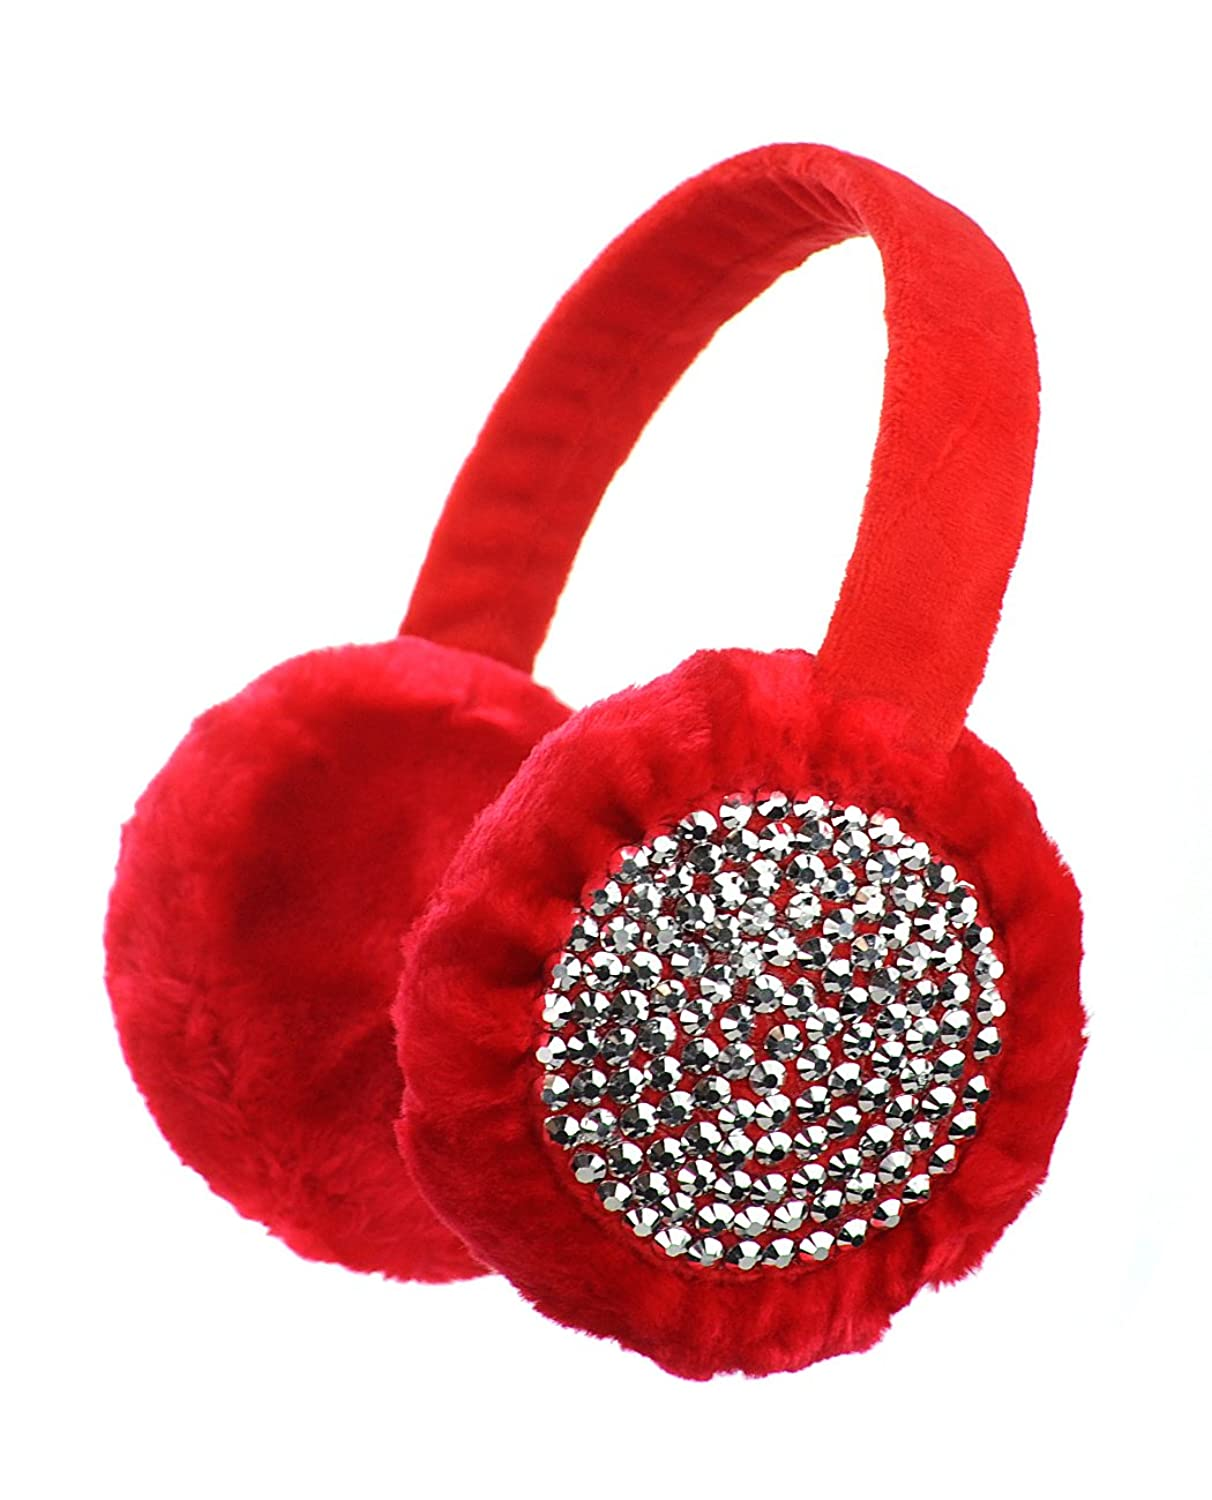 Solid Color Soft Faux Fur Warm Earmuffs w/ Rhinestone Studded Accents - Red